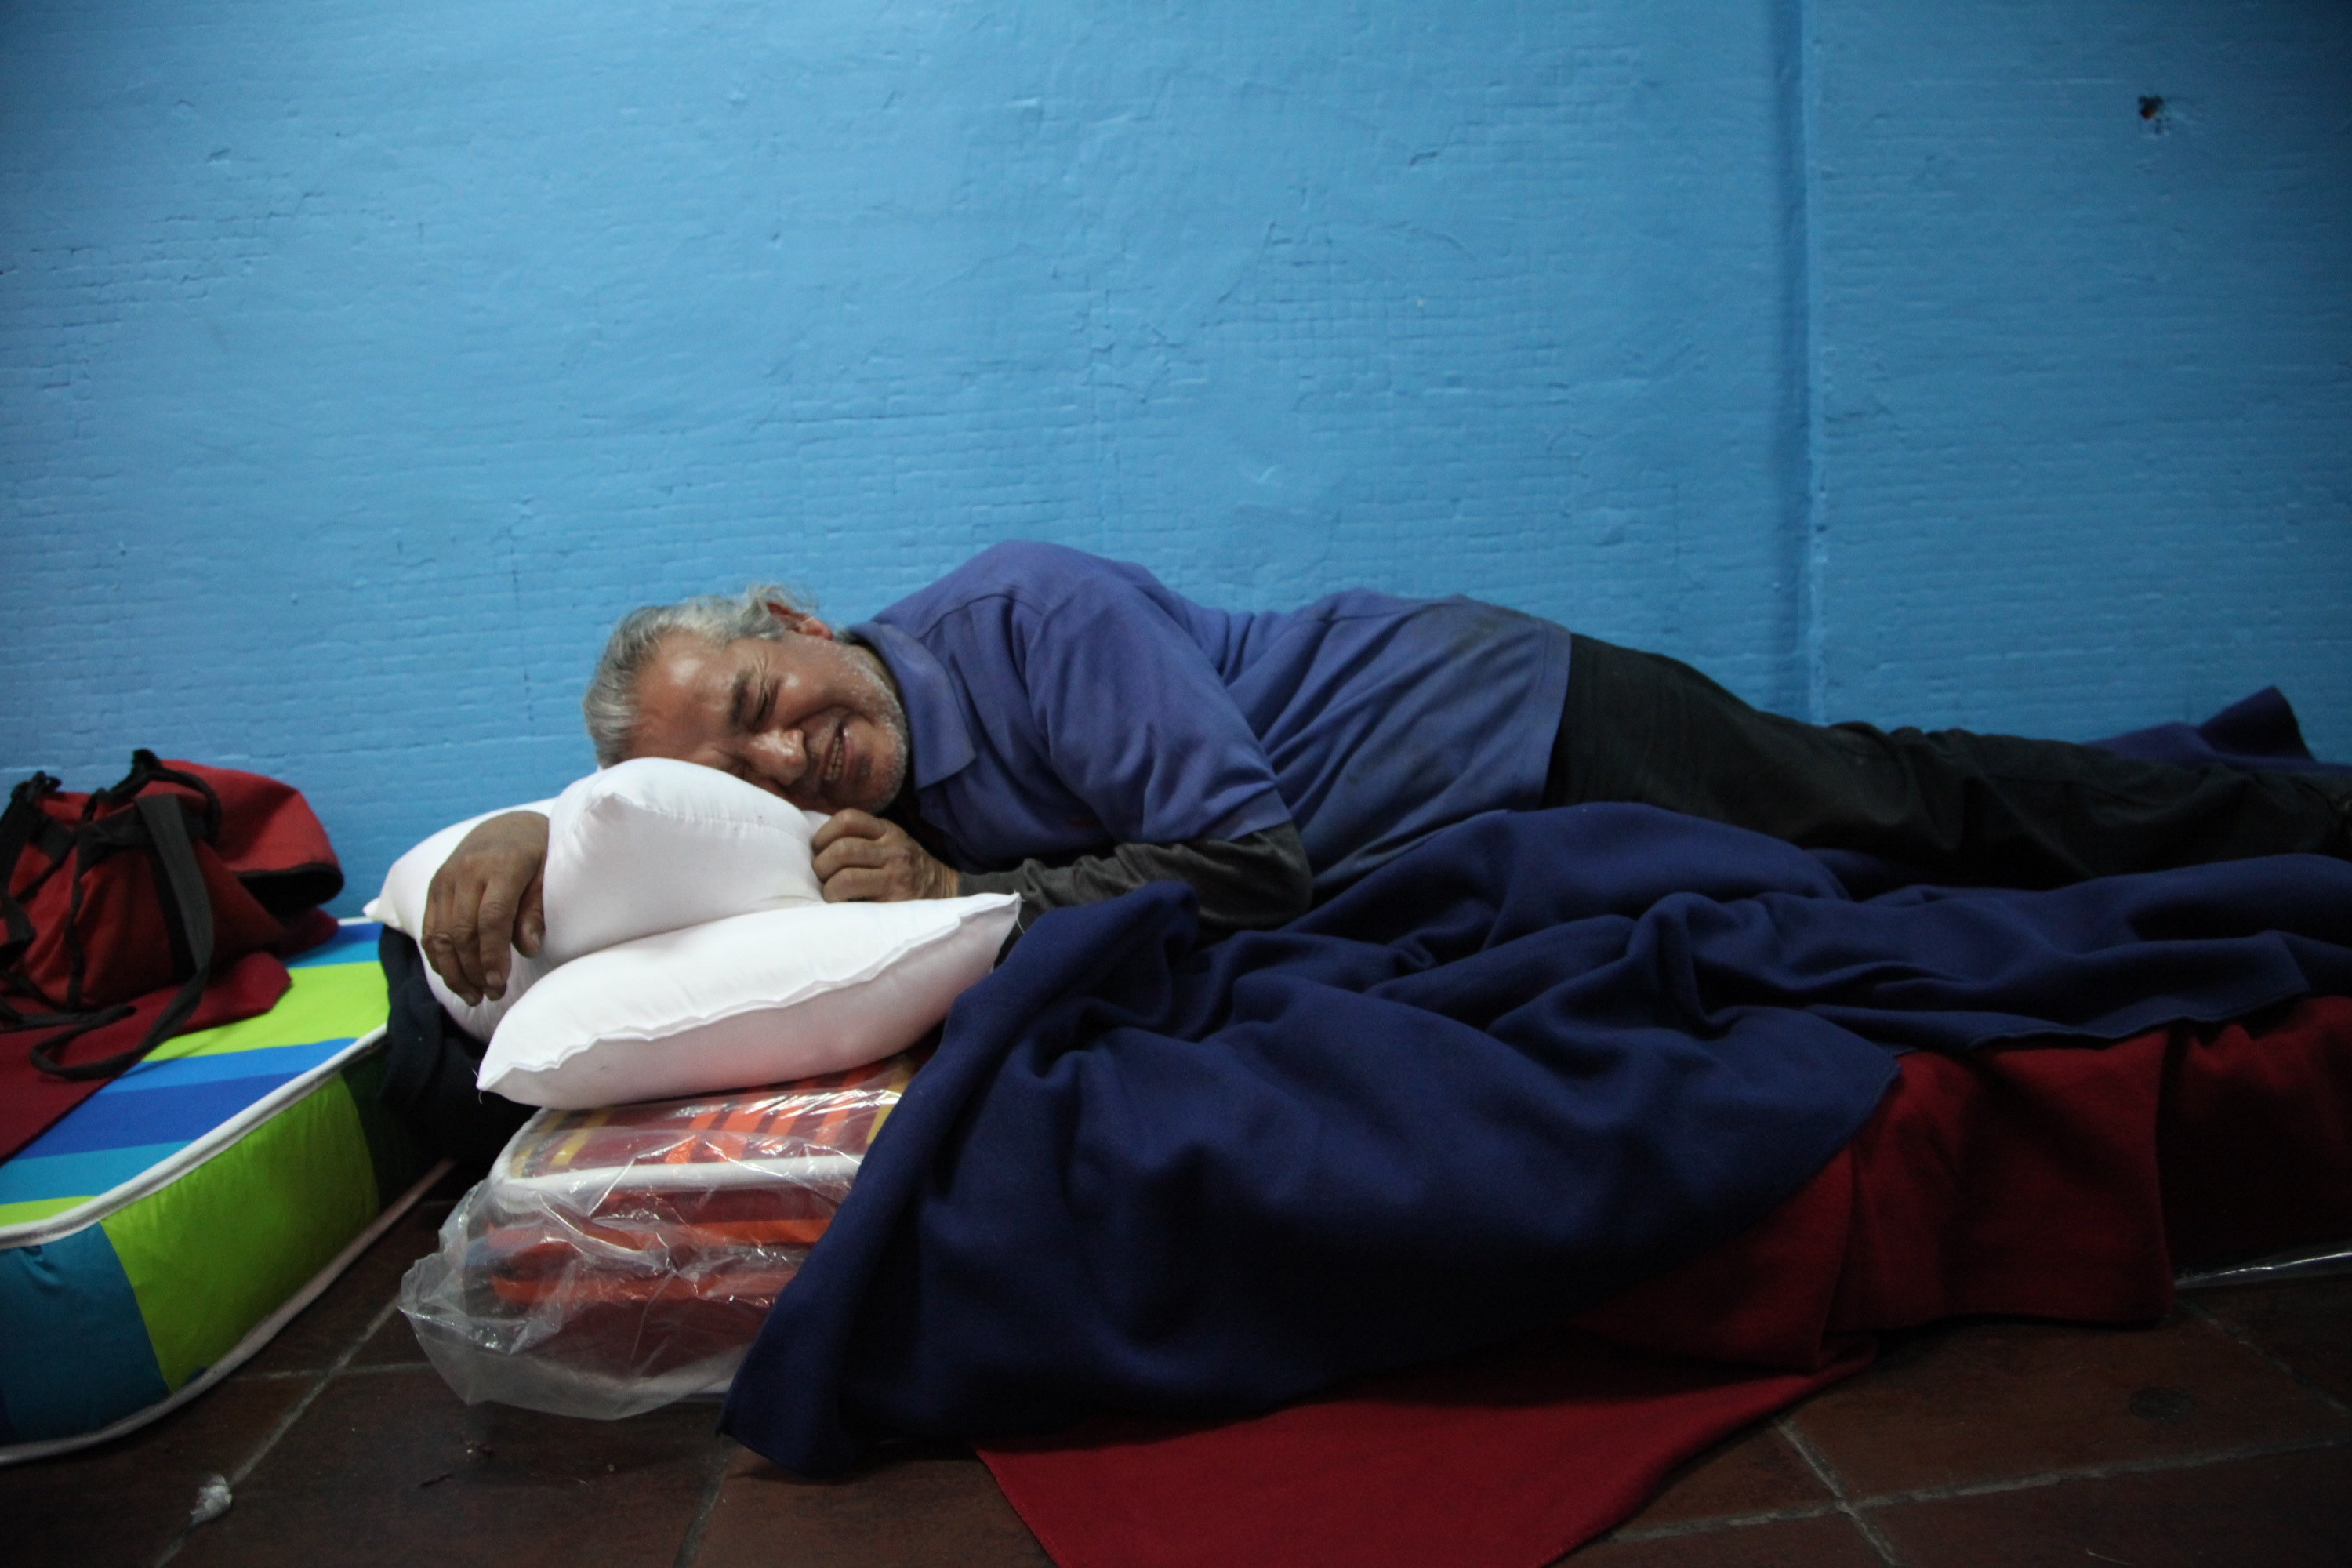 Armando Patricio Galleguillos Luna, 63, lies on a mattress in the designated area for people who have been using a substance, before they can access the rest of the shelter at the indoor stadium Estadio Victor Jara in Santiago, Chile.